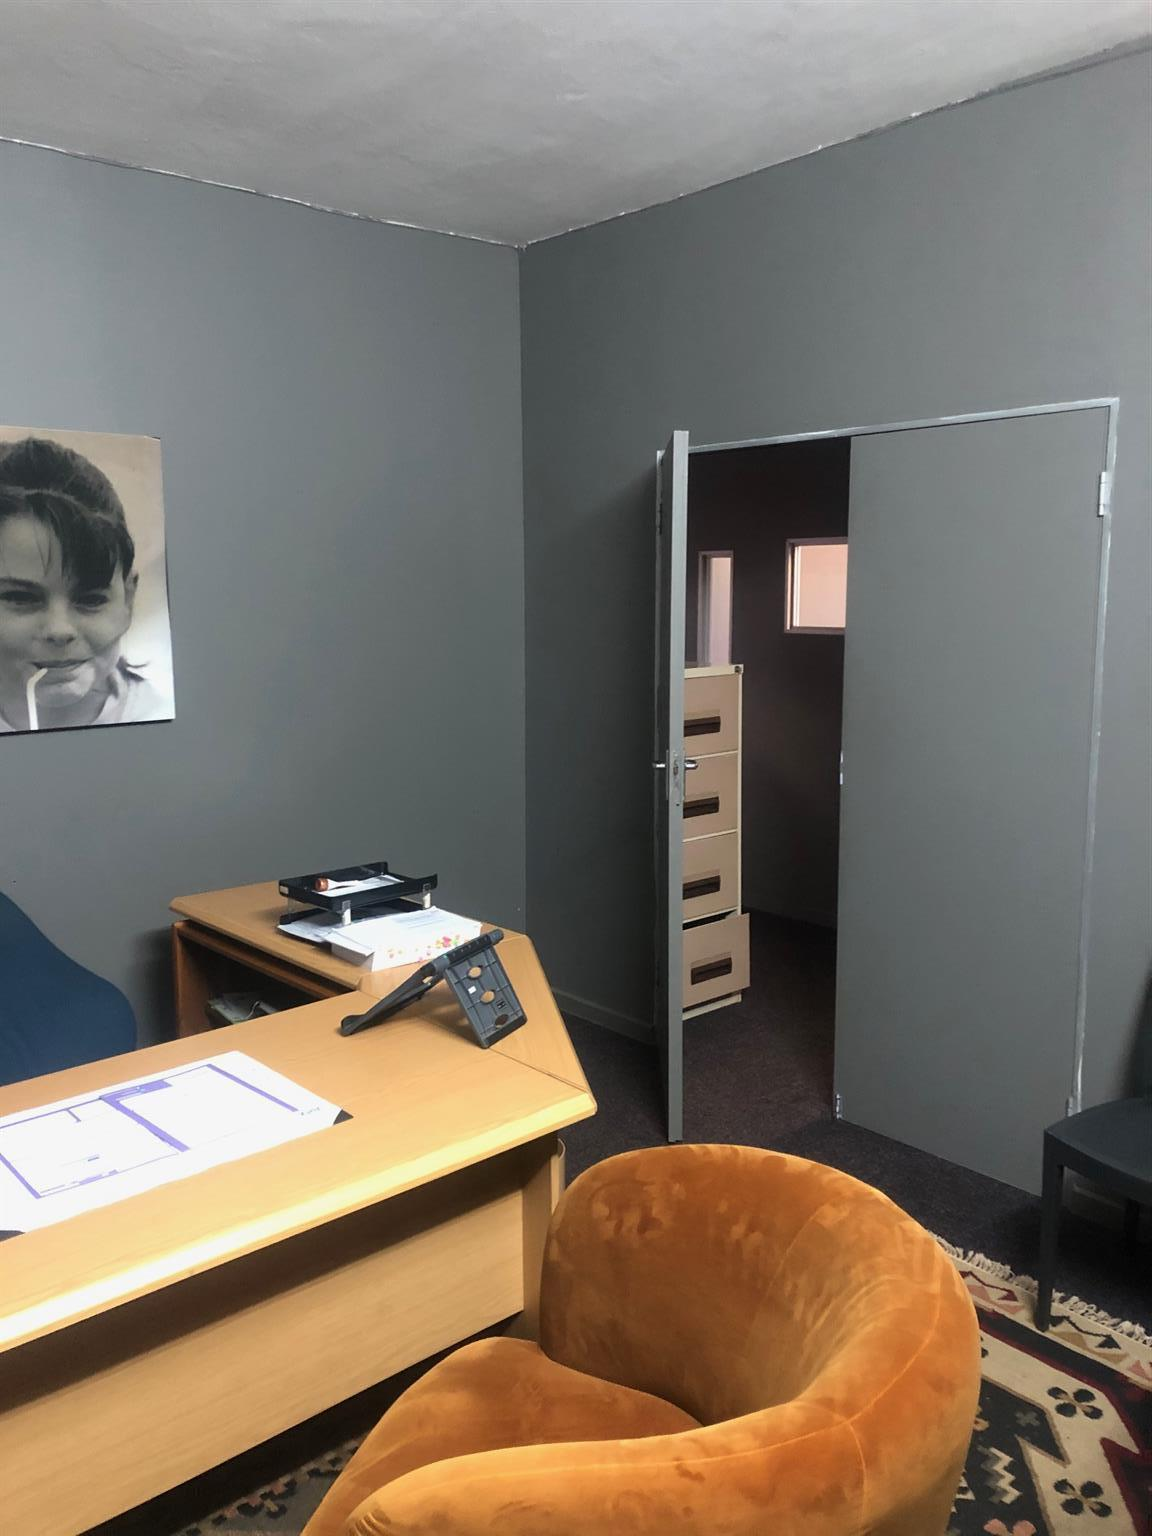 Office Space D1 to Let in Brummeria (Pretoria East)